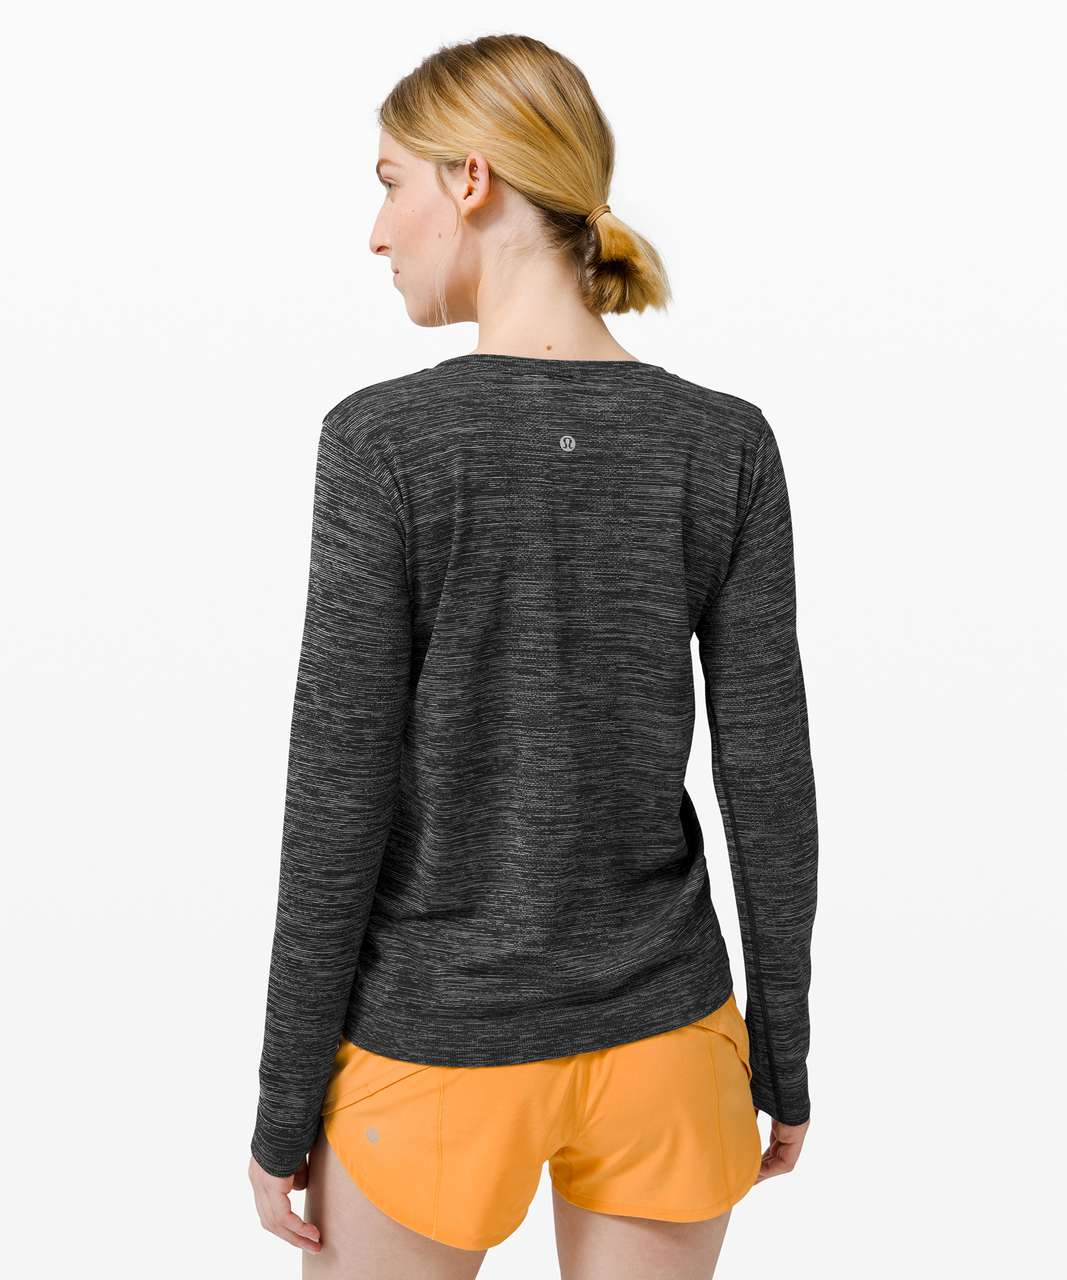 Lululemon Swiftly Relaxed Long Sleeve - Black / White / Black